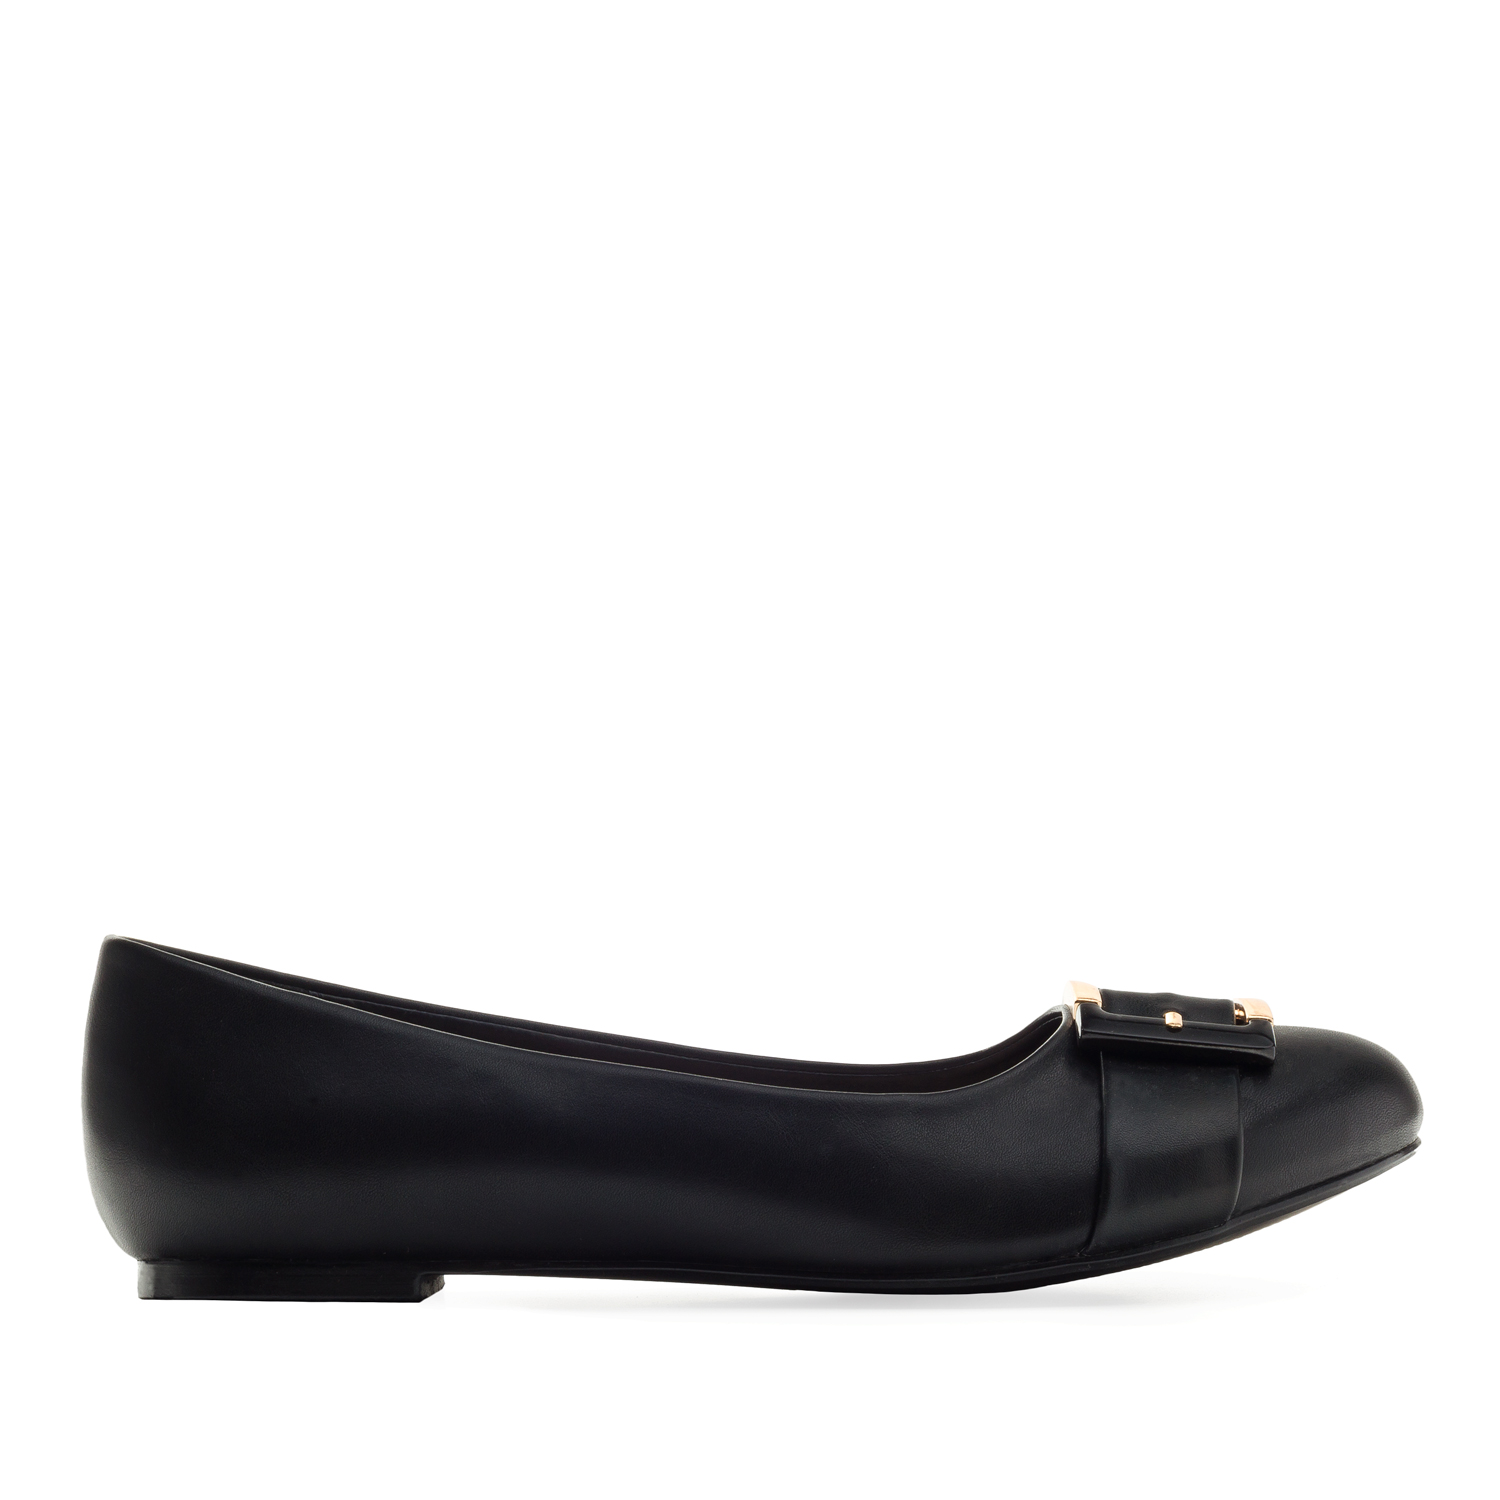 Buckled Ballet Flats in Black faux Leather